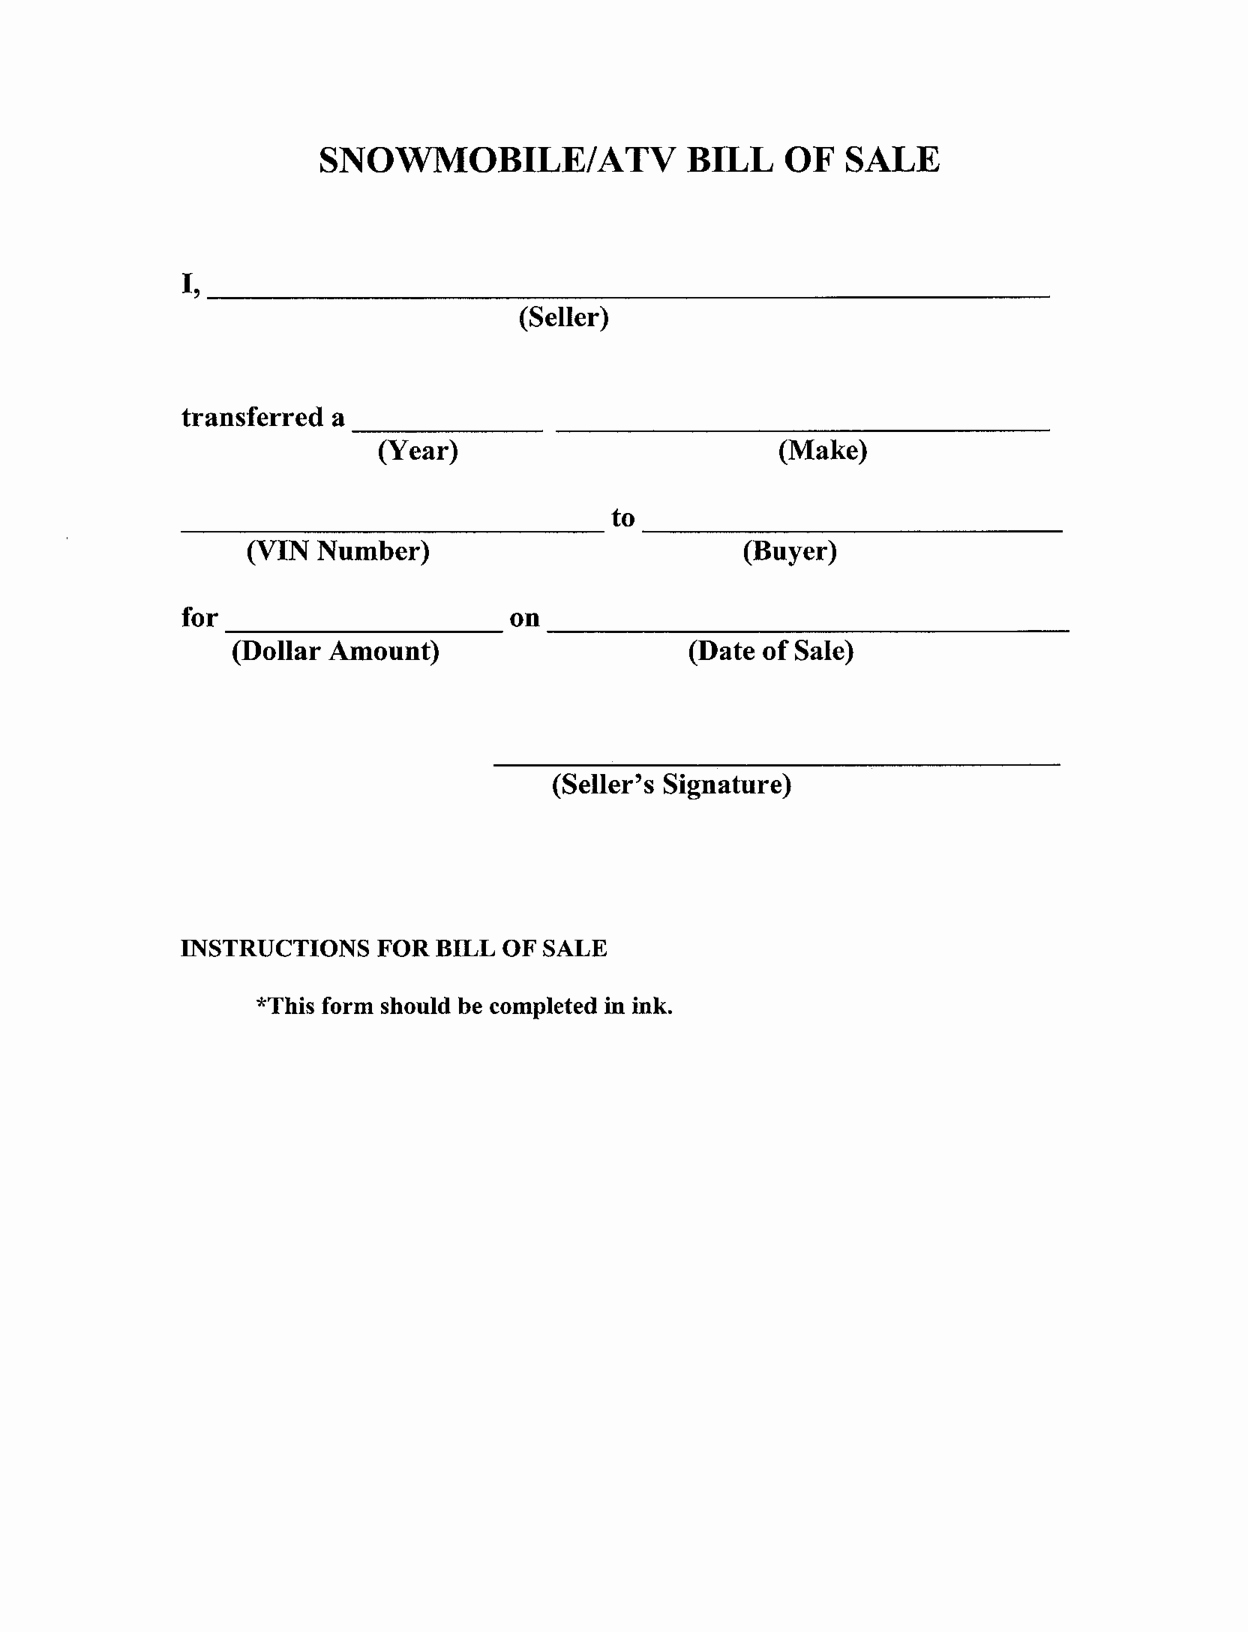 Standard Bill Of Sale Pdf Awesome Free Printable Bill Of Sale Templates form Generic